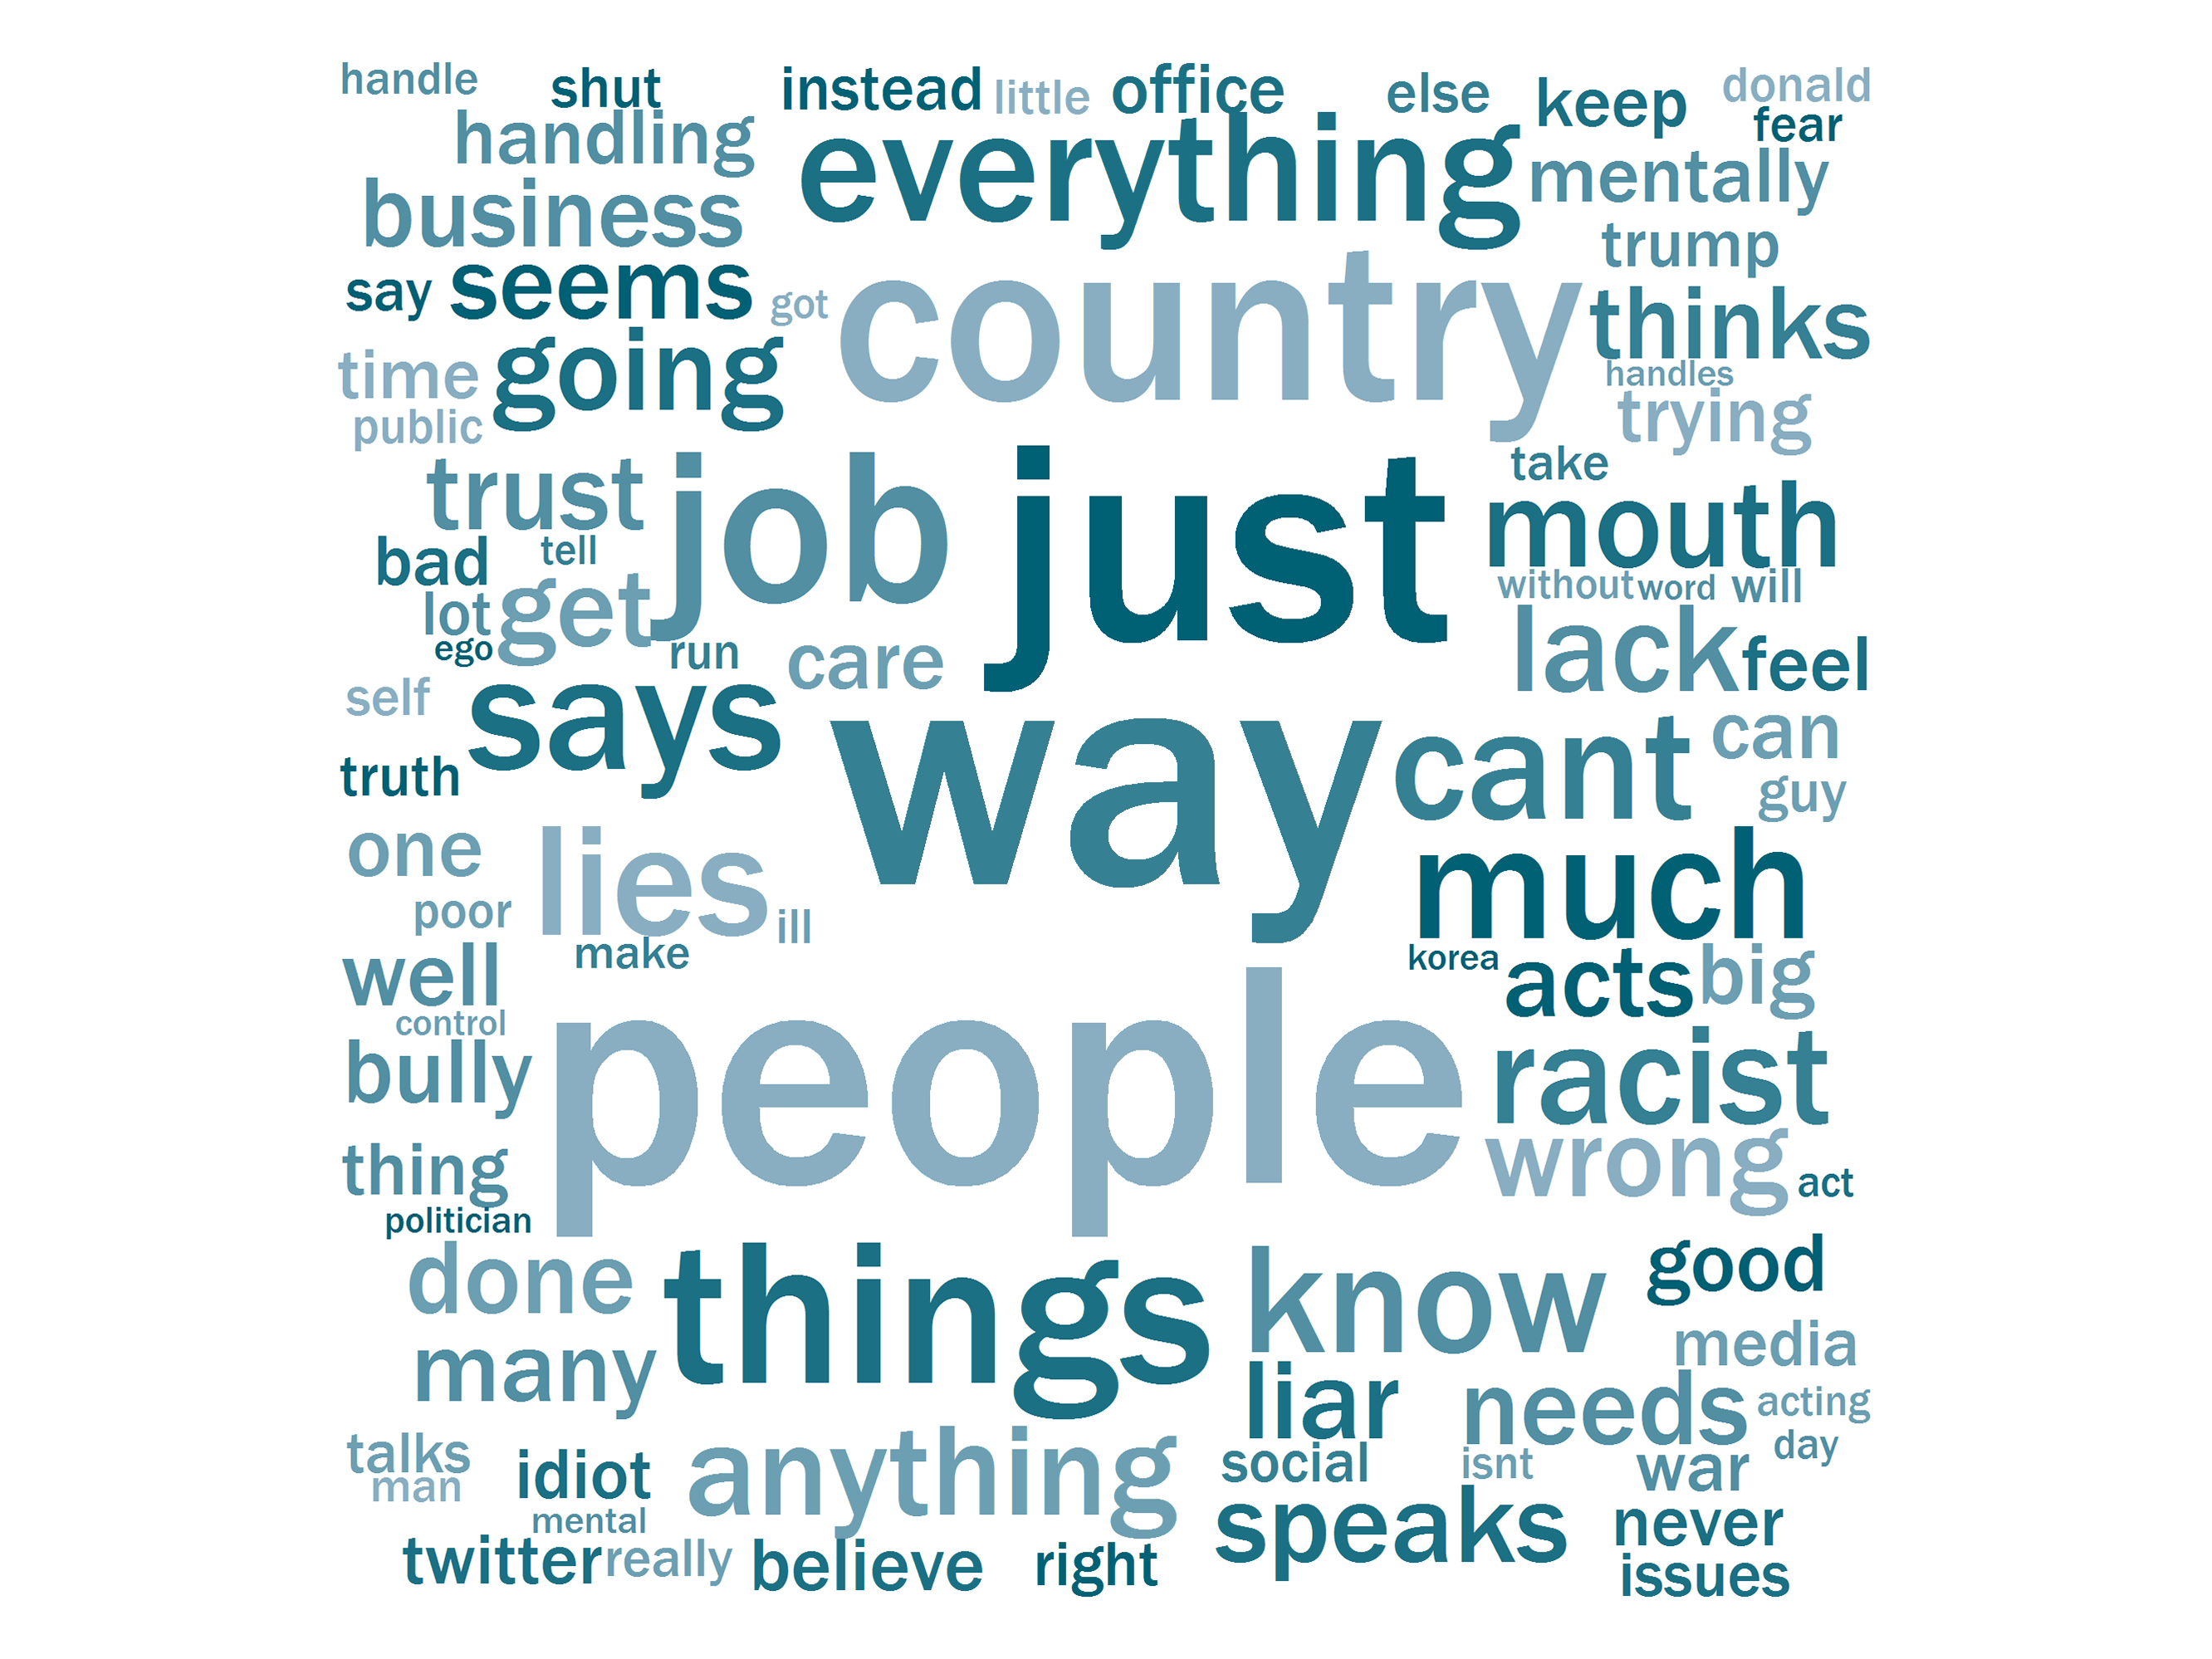 Words Minnesota Trump opponents use to describe the president.